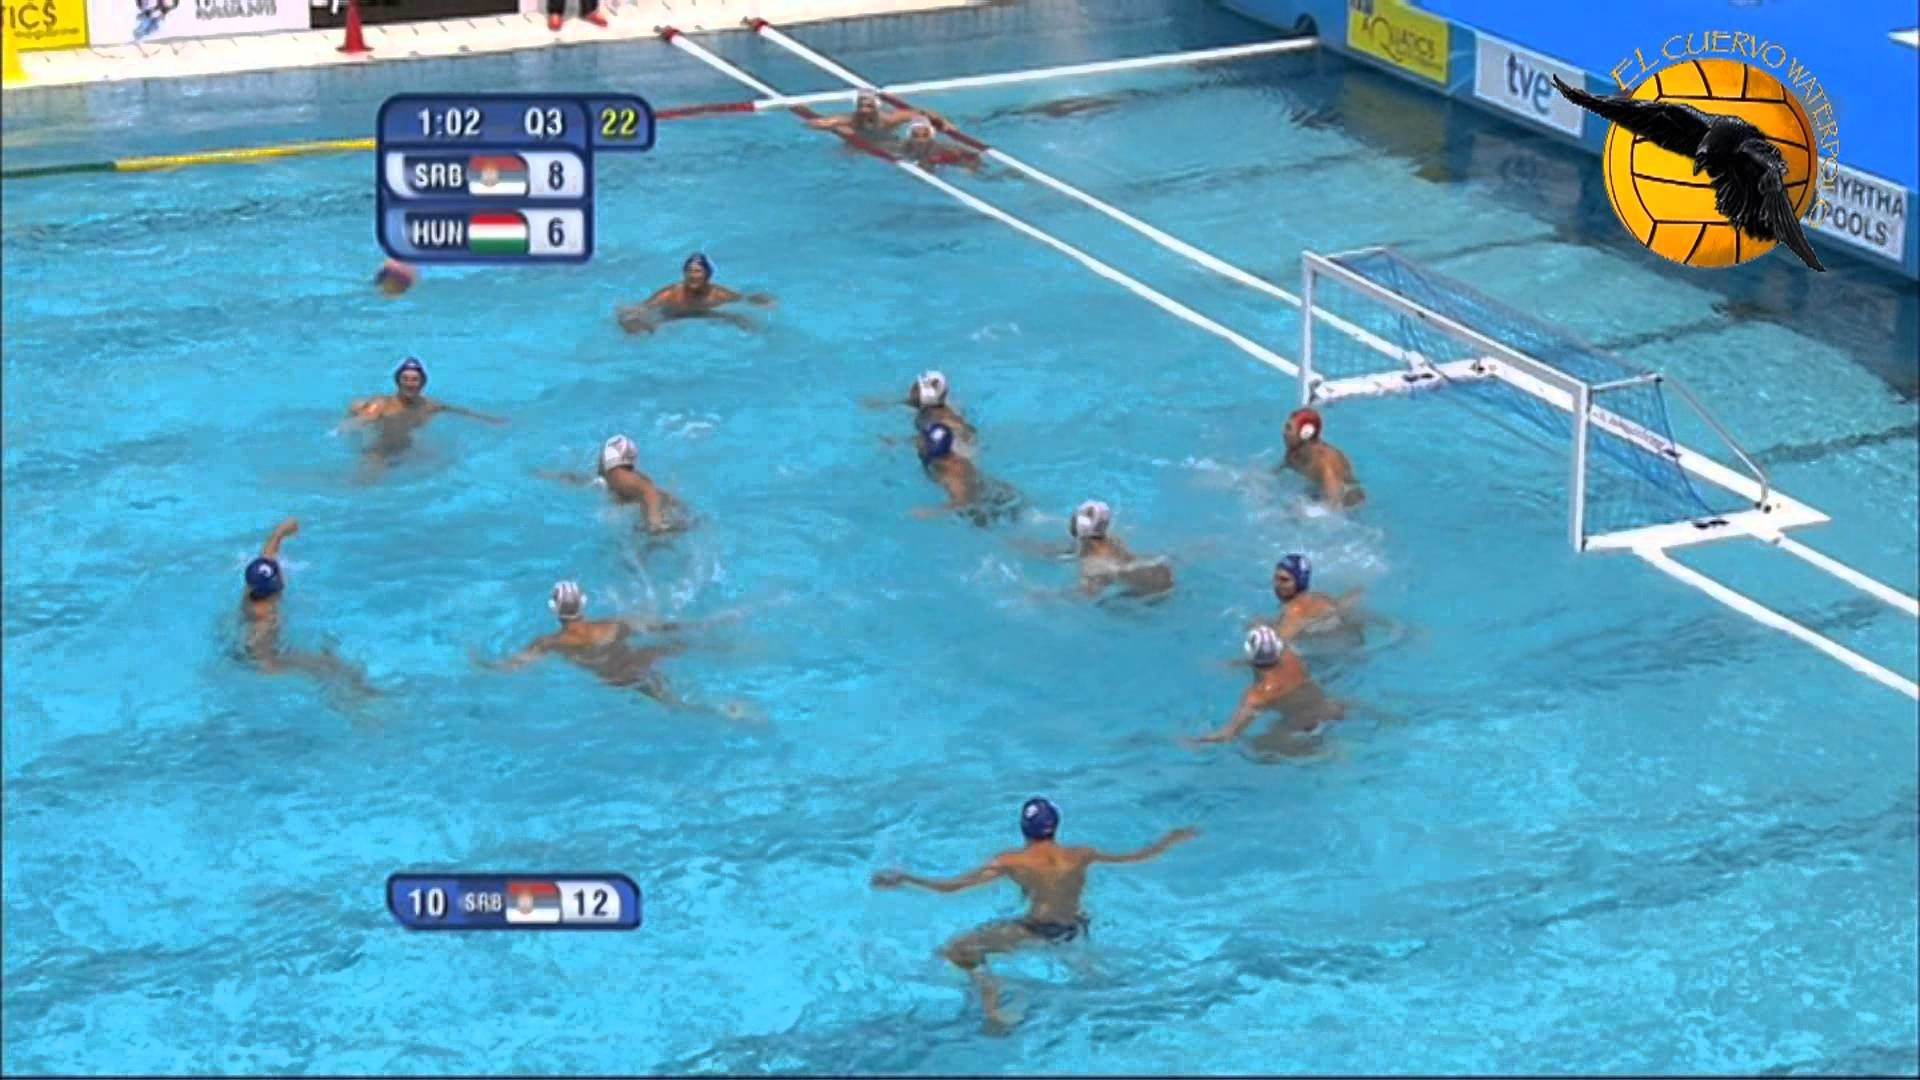 1920x1080 Serbia 13 Hungary 10 World Champs Barcelona 2013 prel 27 7 13 water polo -  YouTube